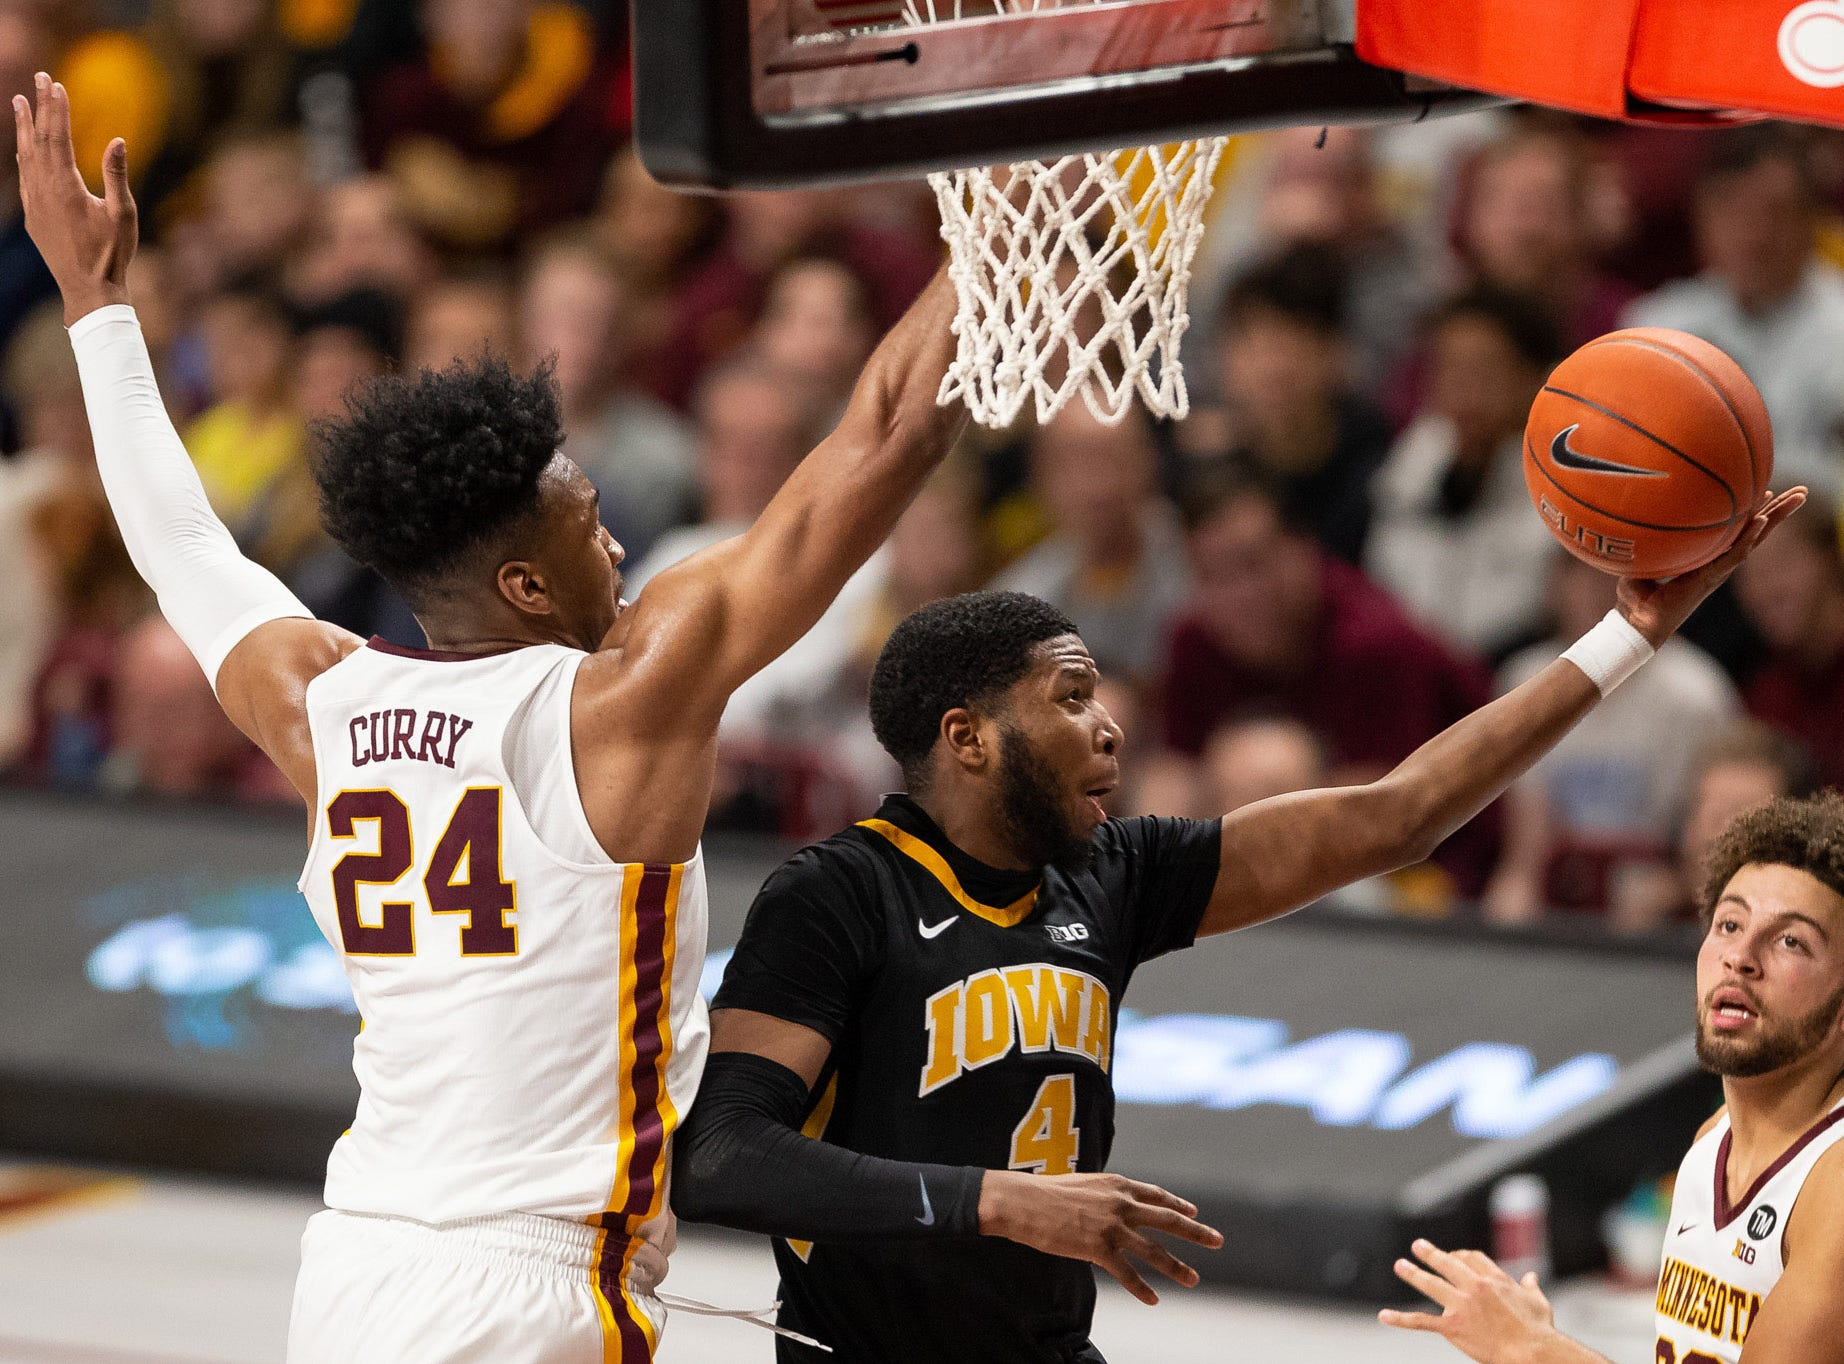 Iowa Hawkeyes guard Isaiah Moss (4) shoots the ball as Minnesota Gophers forward Eric Curry (24) defends during the second half at Williams Arena. Mandatory Credit: Harrison Barden-USA TODAY Sports